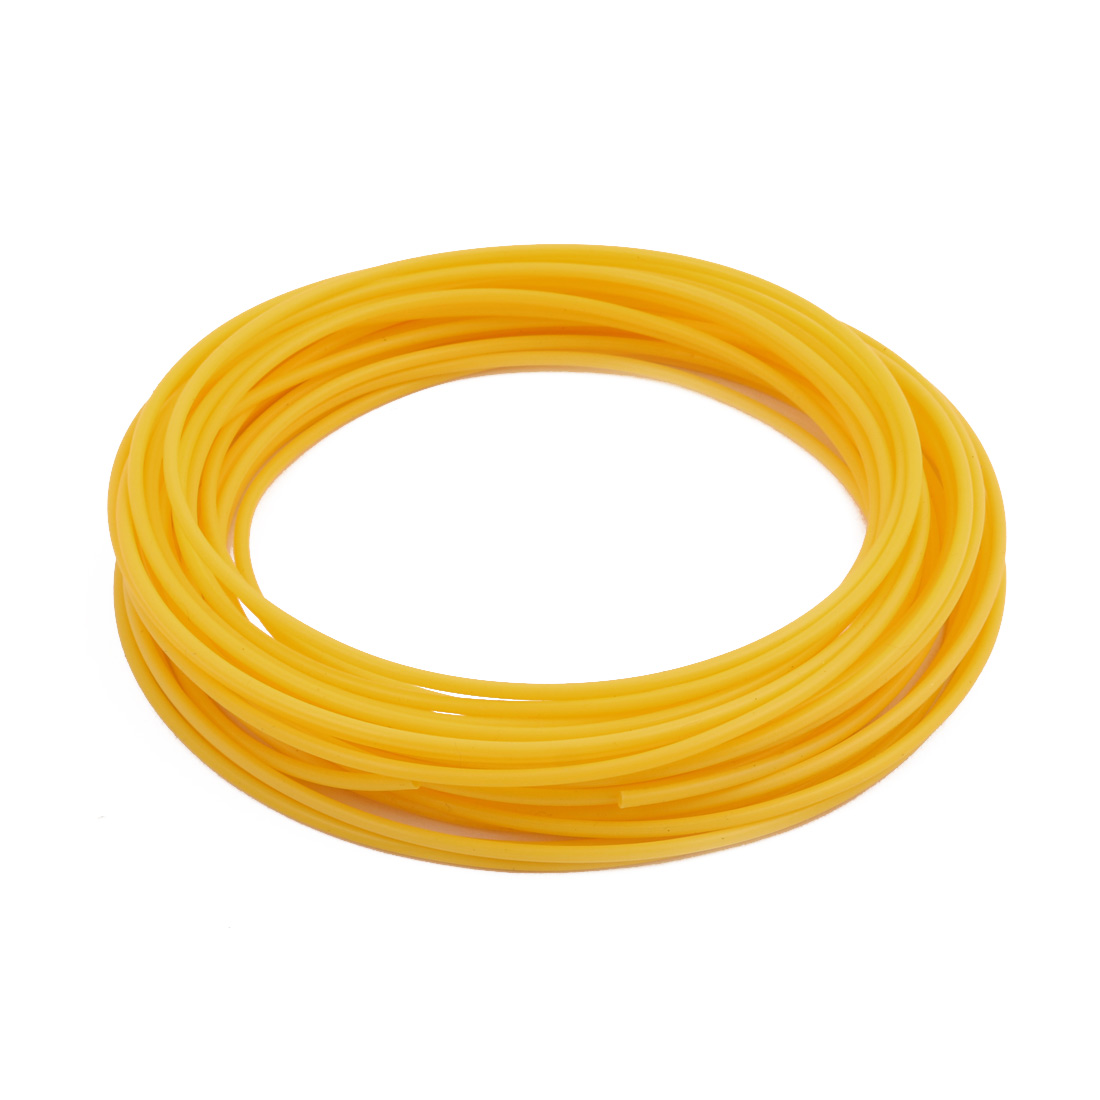 1.93mmx2.33mm PTFE Resistant High Temperature Yellow Tubing 10 Meters 32.8Ft